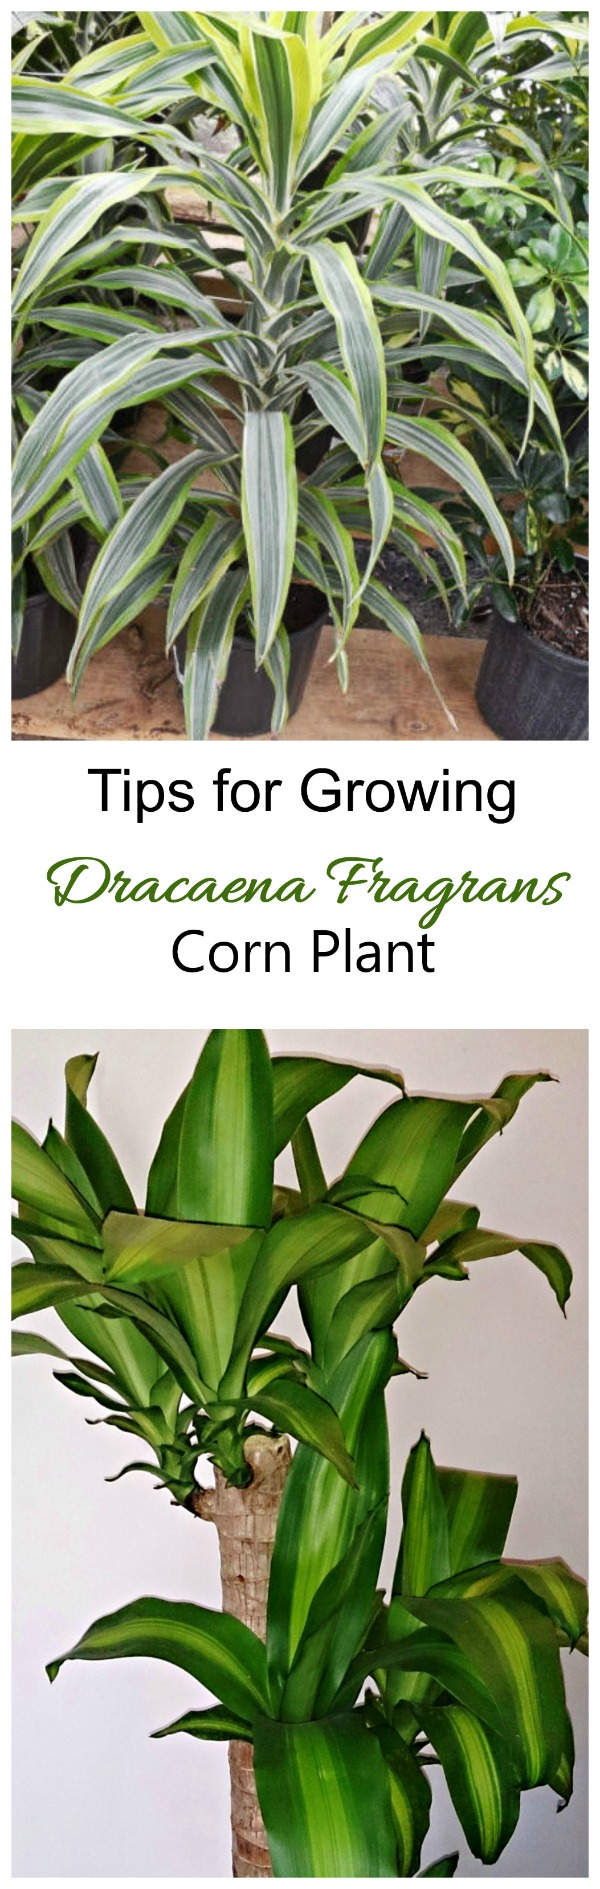 These tips for growing dracaena fragrans show how easy this house plant is to manage. #dracaenafragrans #cornplants